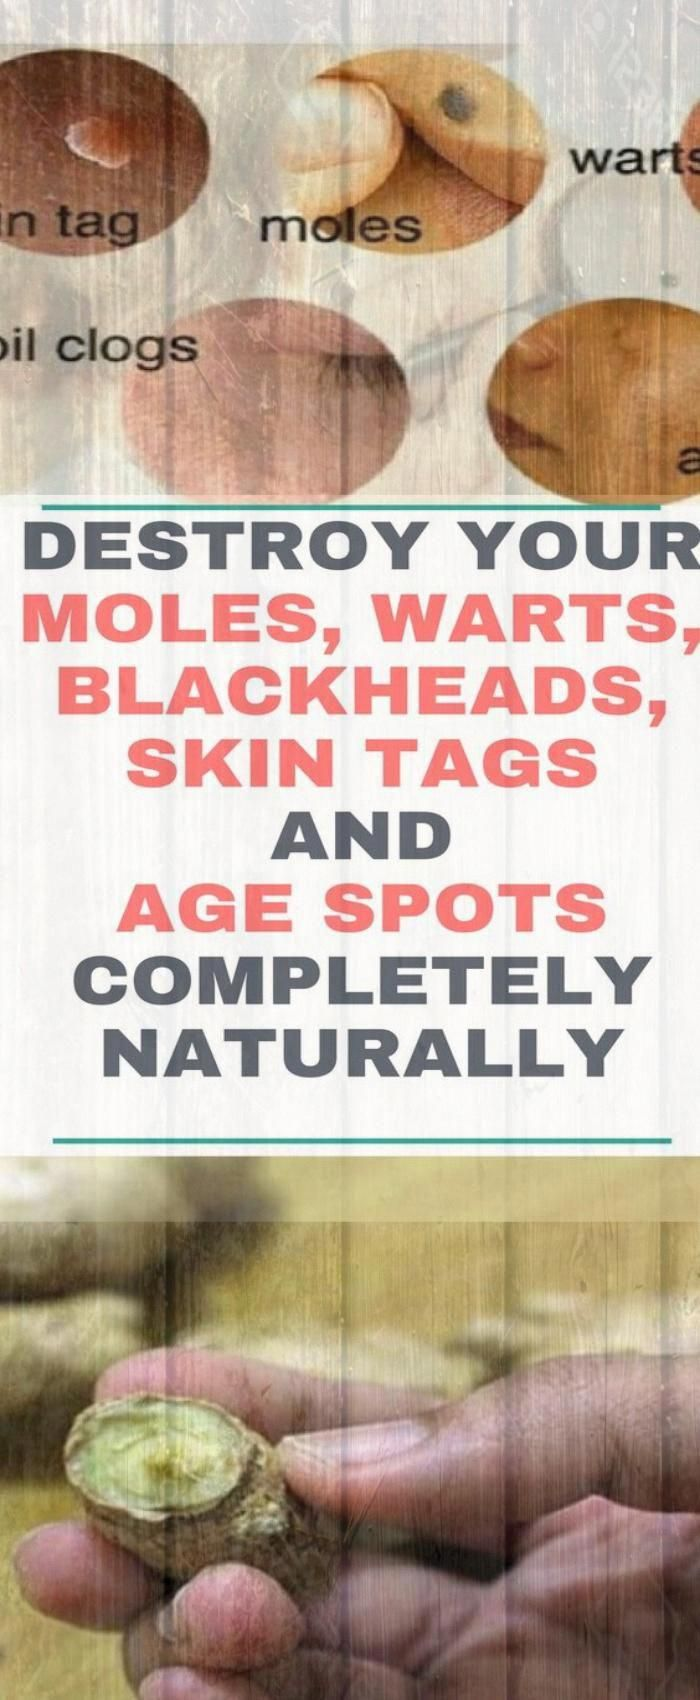 DESTROY YOUR MOLES, WARTS, BLACKHEADS, SKIN TAGS AND AGE SPOTS COMPLETELY NATURALLY #health #fitness...